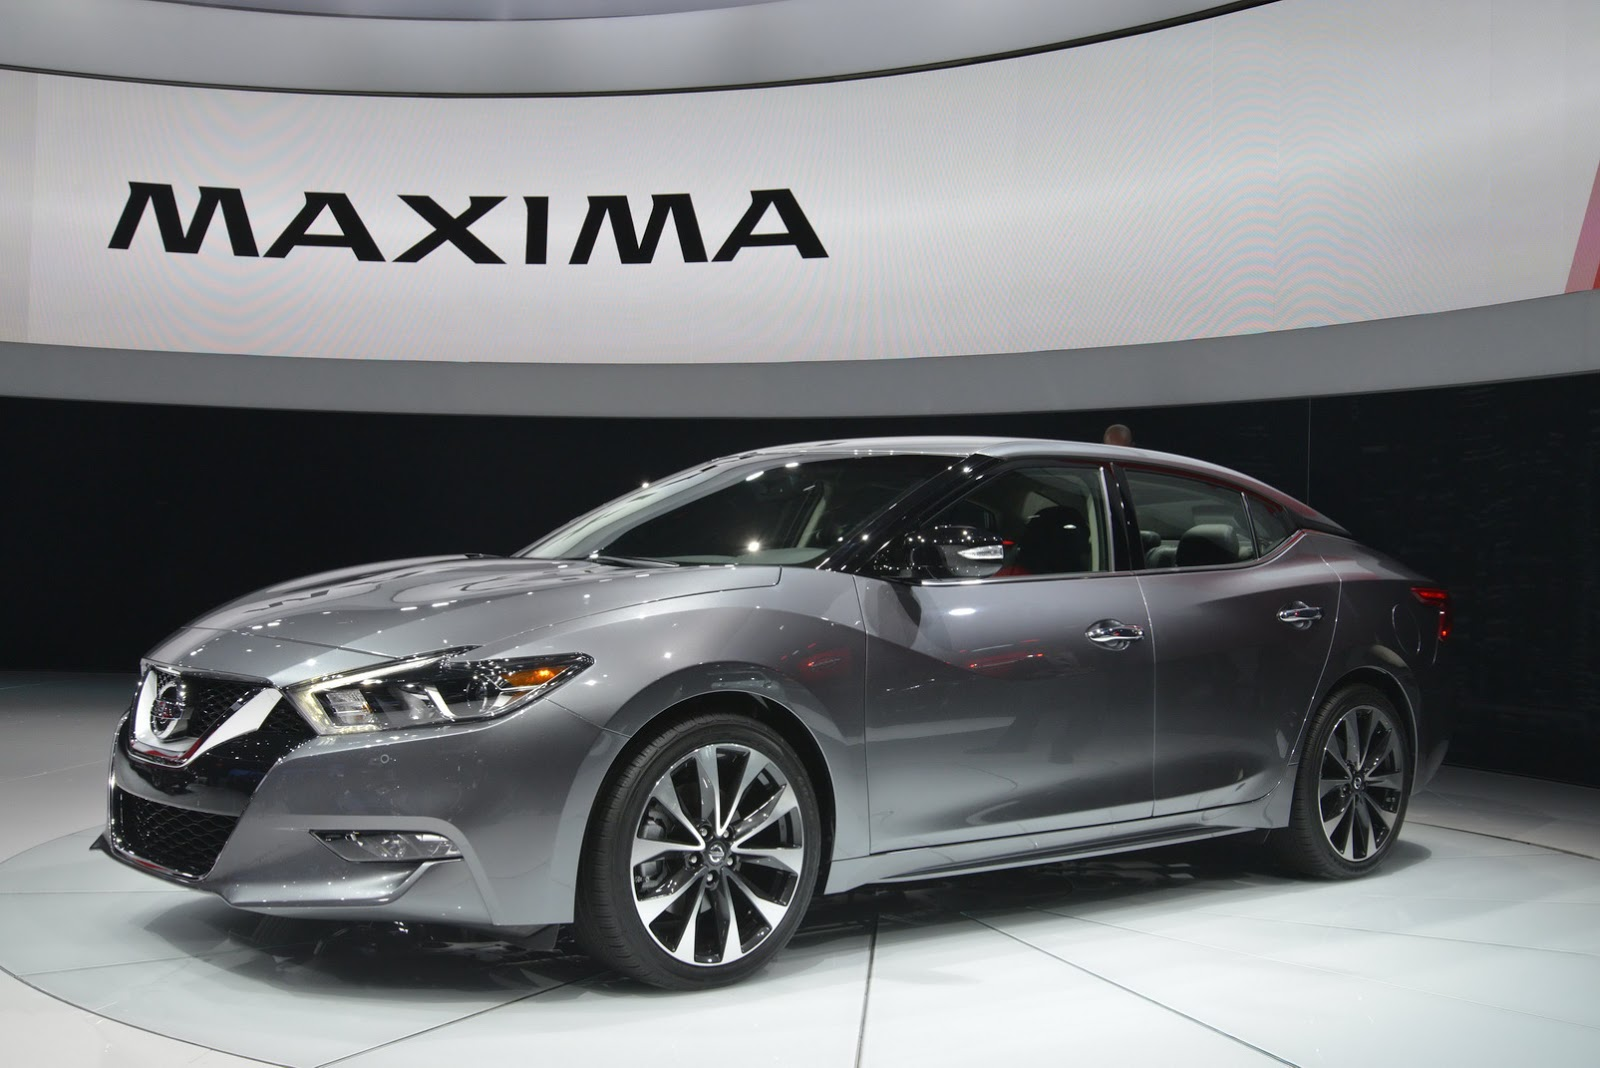 2015 Nissan Maxima For Sale >> Nissan's Stunning All-New 2016 Maxima Revealed in New York ...